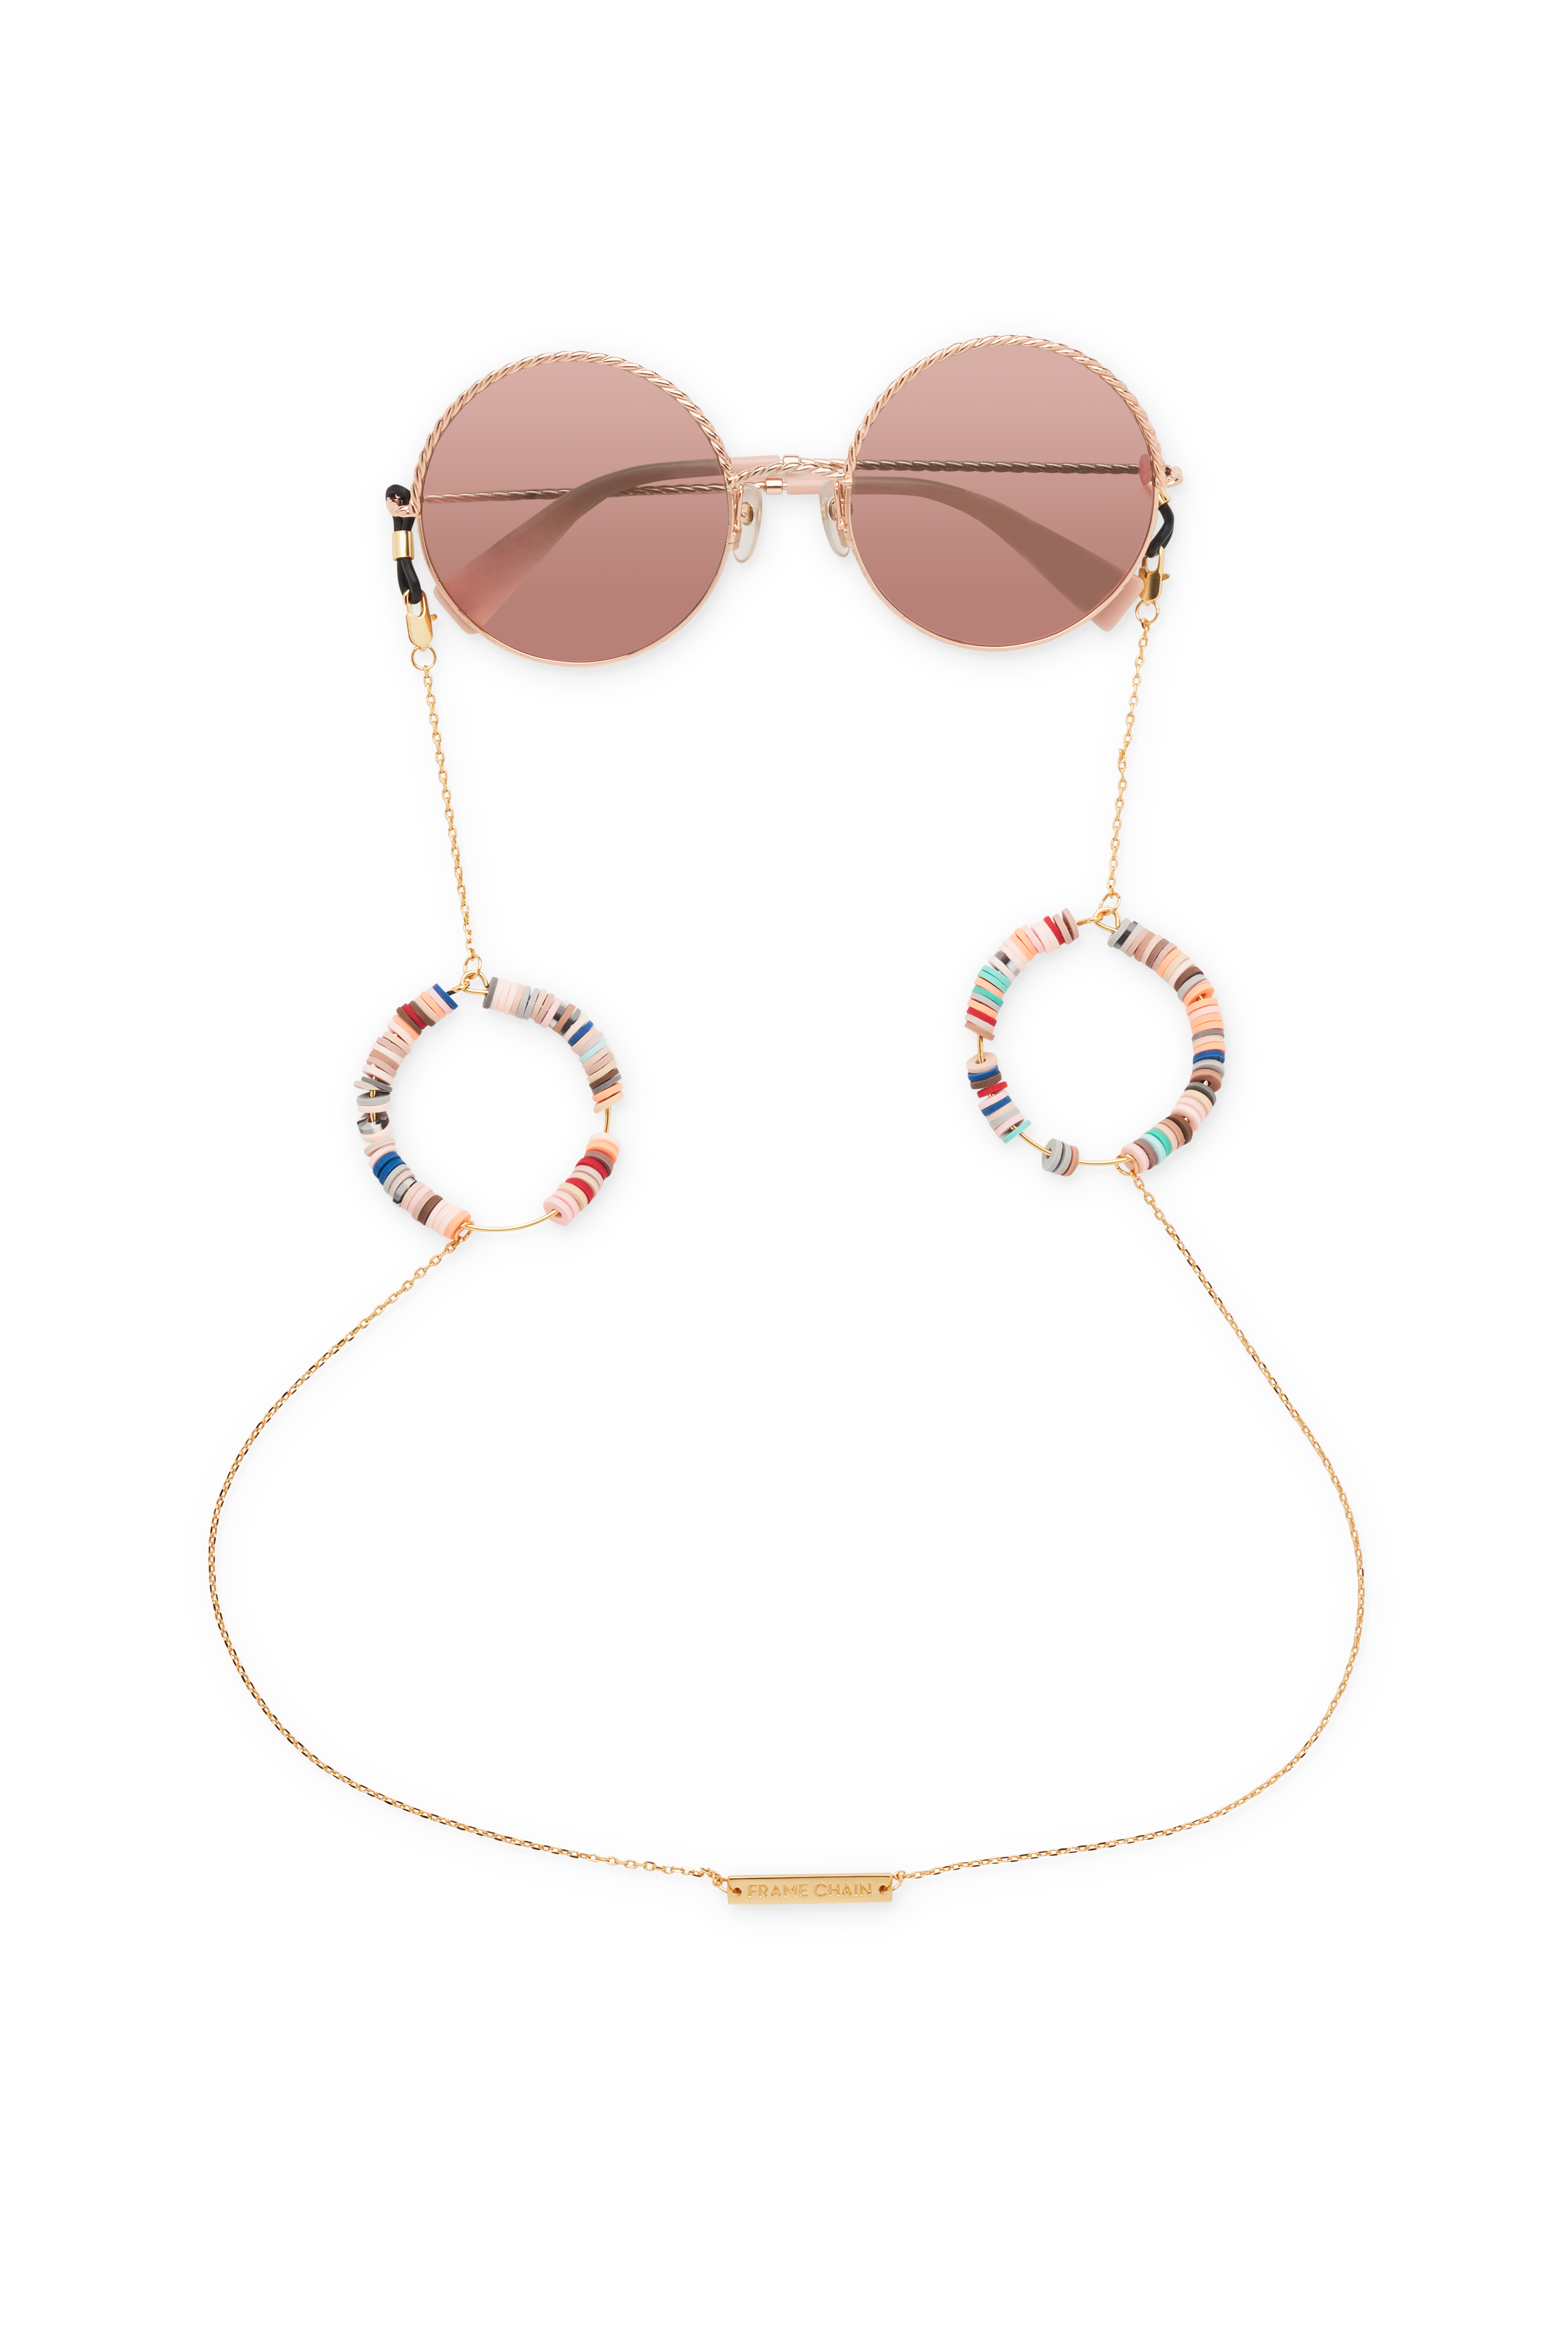 FRAME CHAIN | CANDY POP NUDE in YELLOW GOLD | Glasses Chains | Eyewear Chains